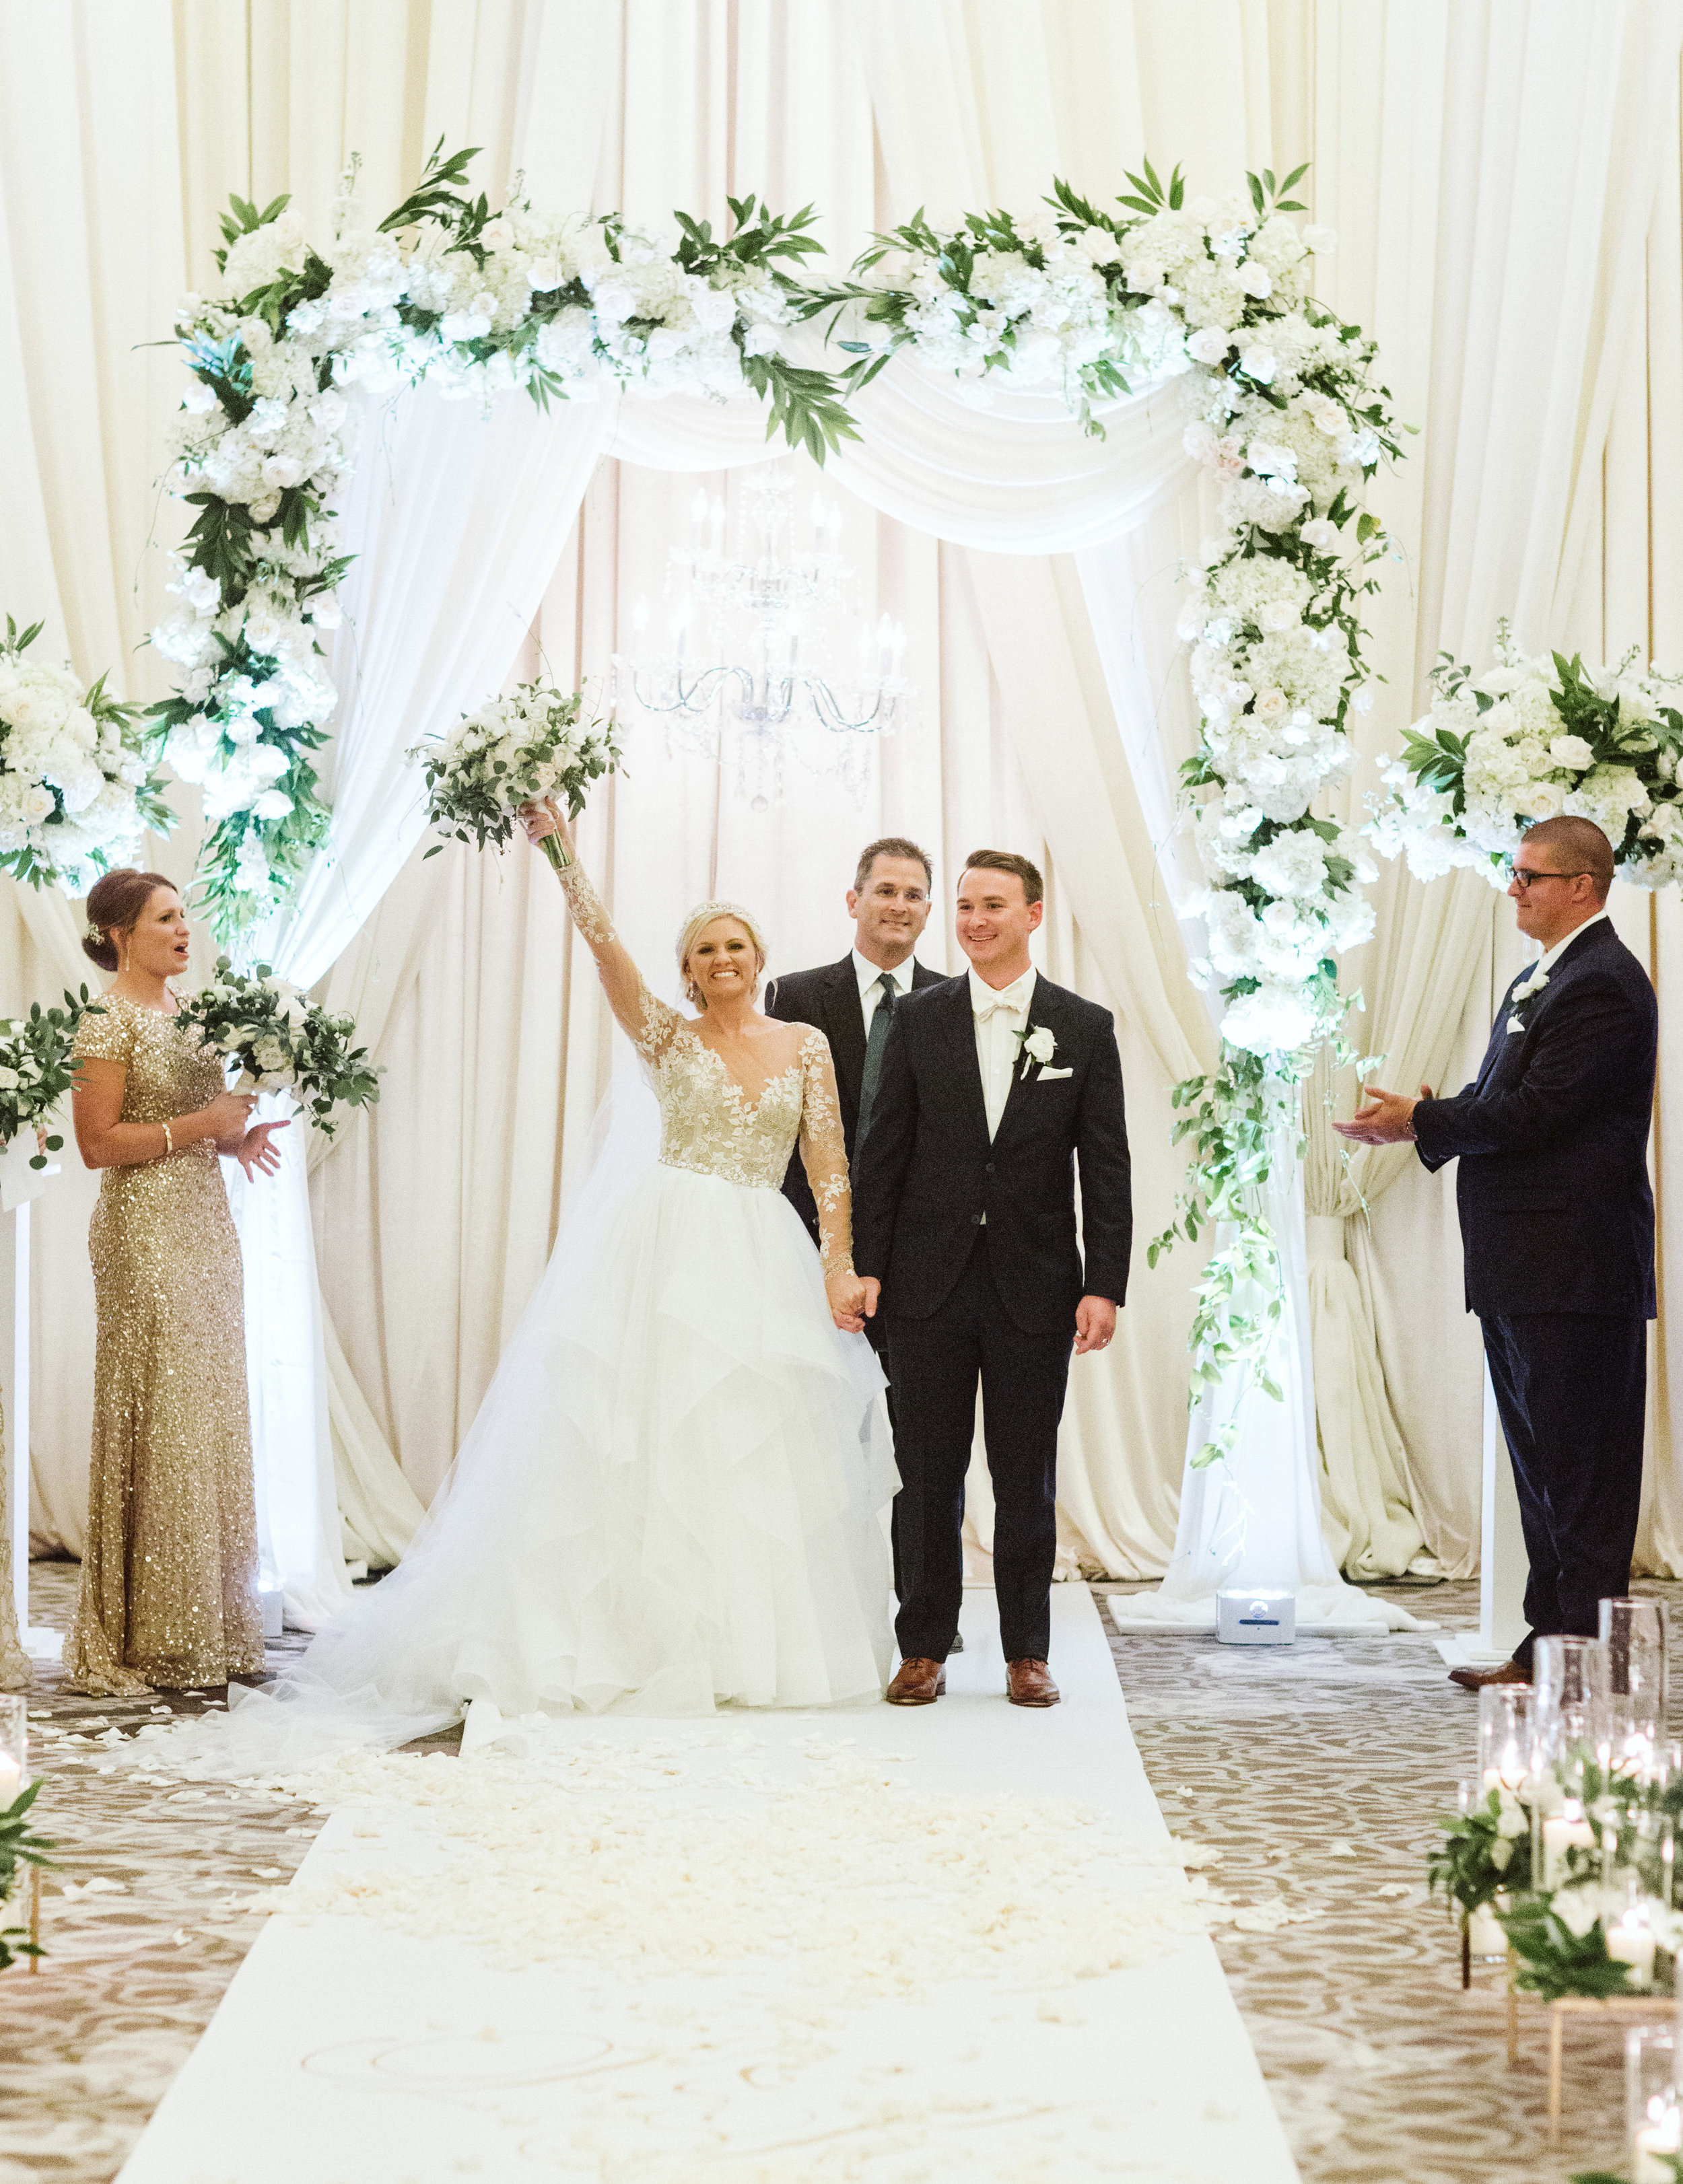 White and greenery ceremony structure with chandelier and hayley paige gown